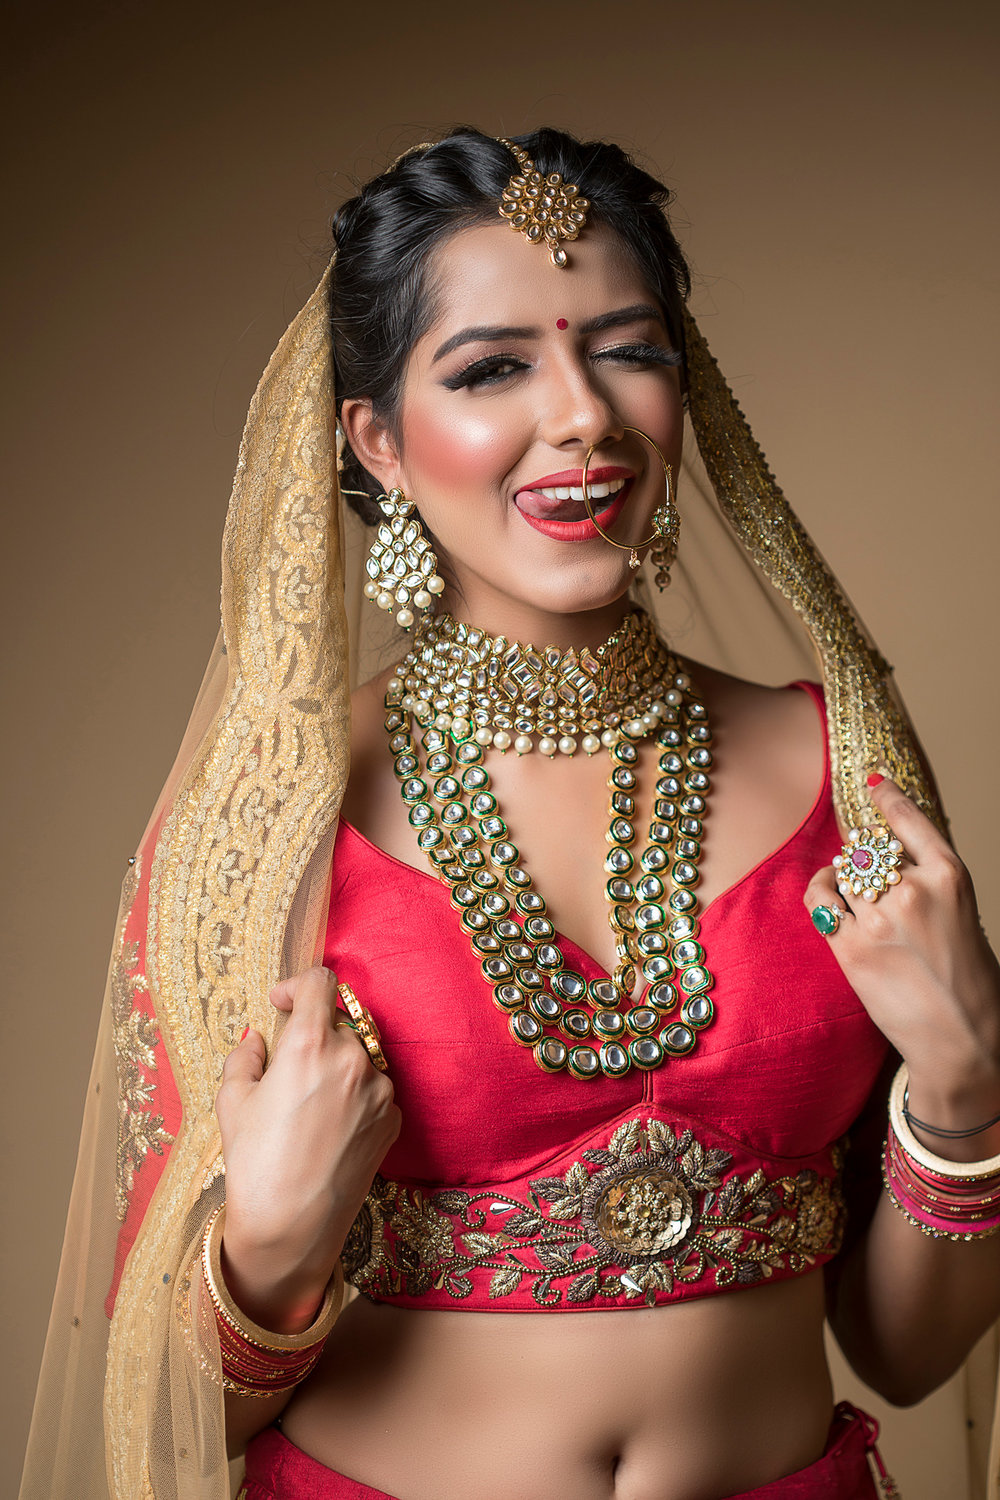 Best Fashion Photographer Delhi Dubai Mumbai